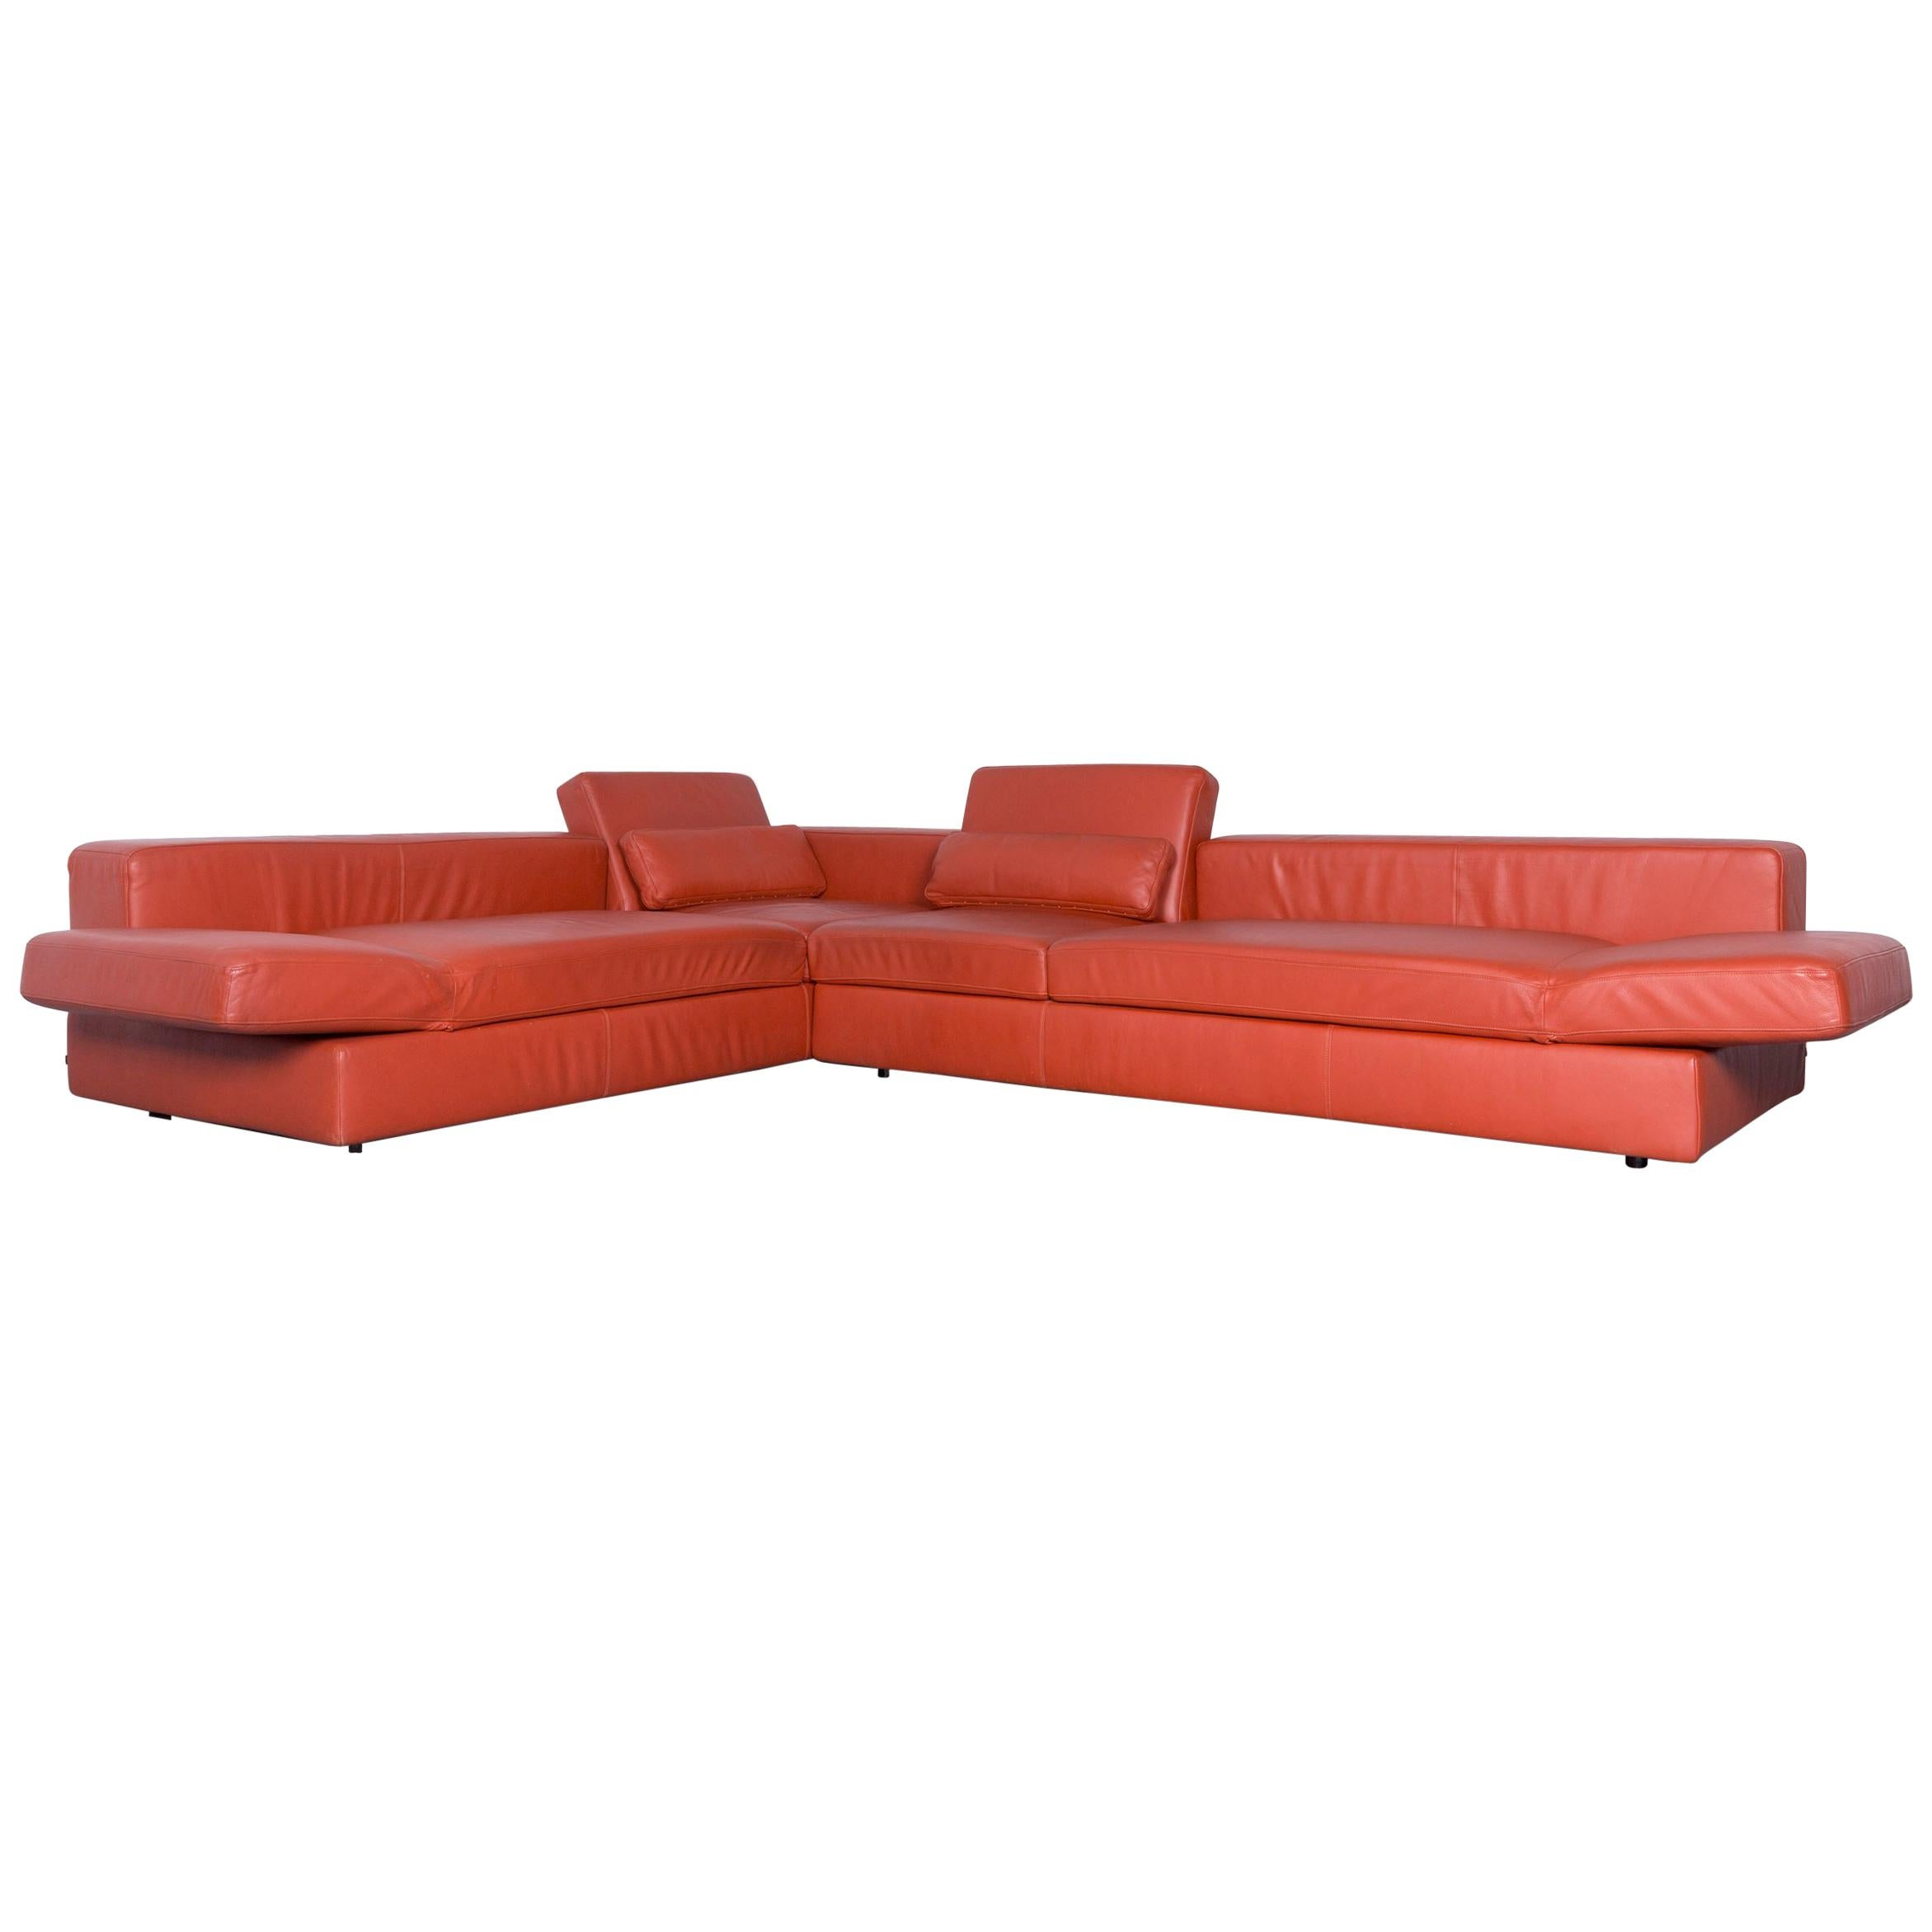 COR Designer Leather Corner Sofa Orange Couch